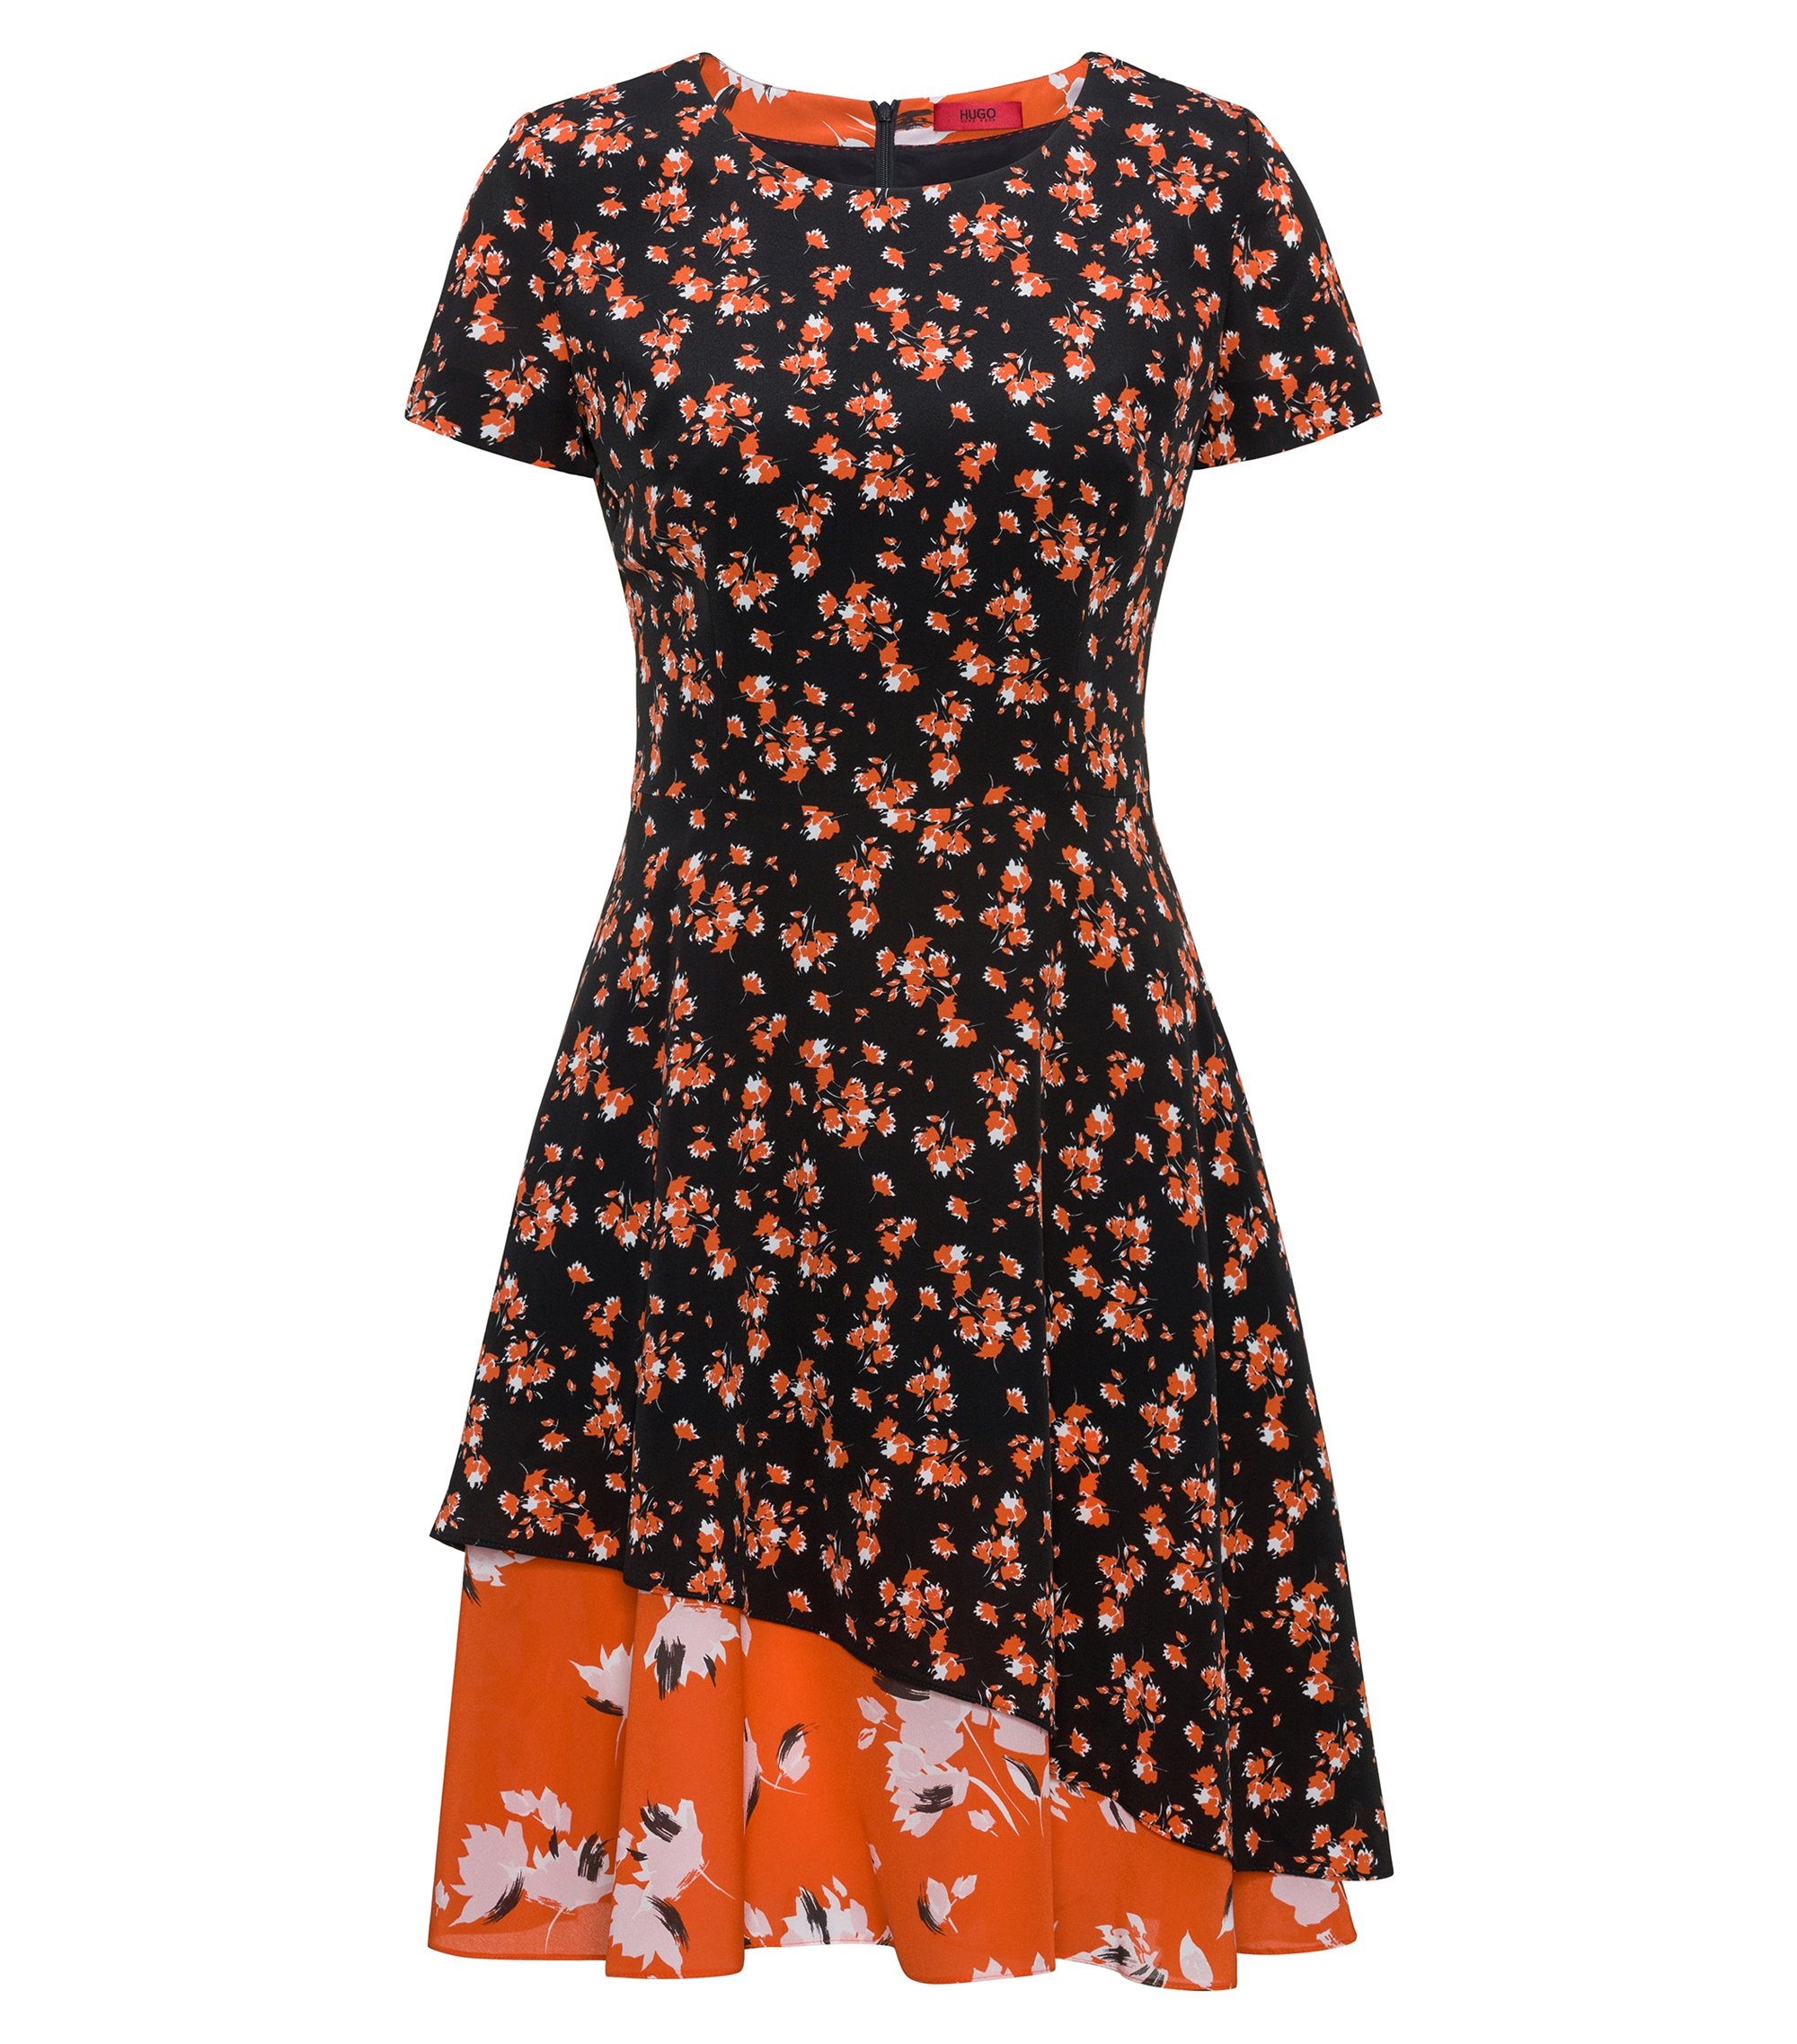 Short-sleeved silk dress with patched floral prints, Patterned